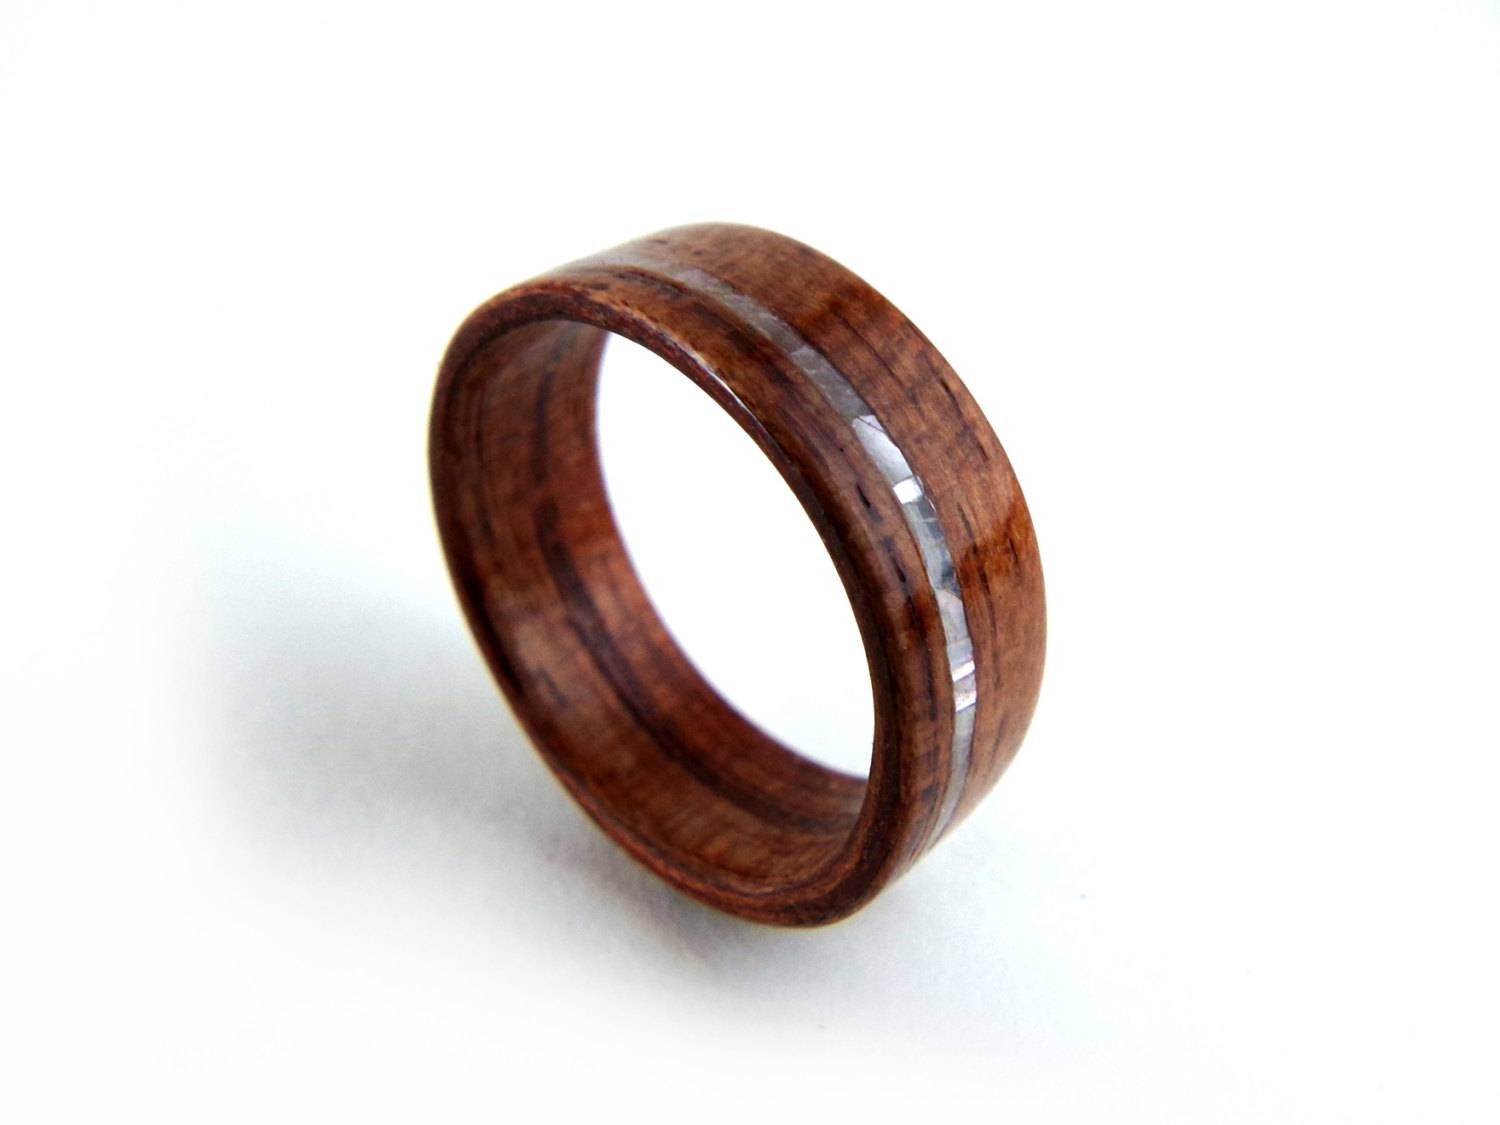 Pearl Wood Ring Mother Of Pearl Wood Ring Inlay Wood Regarding Mother Of Pearl Wedding Bands (View 12 of 15)